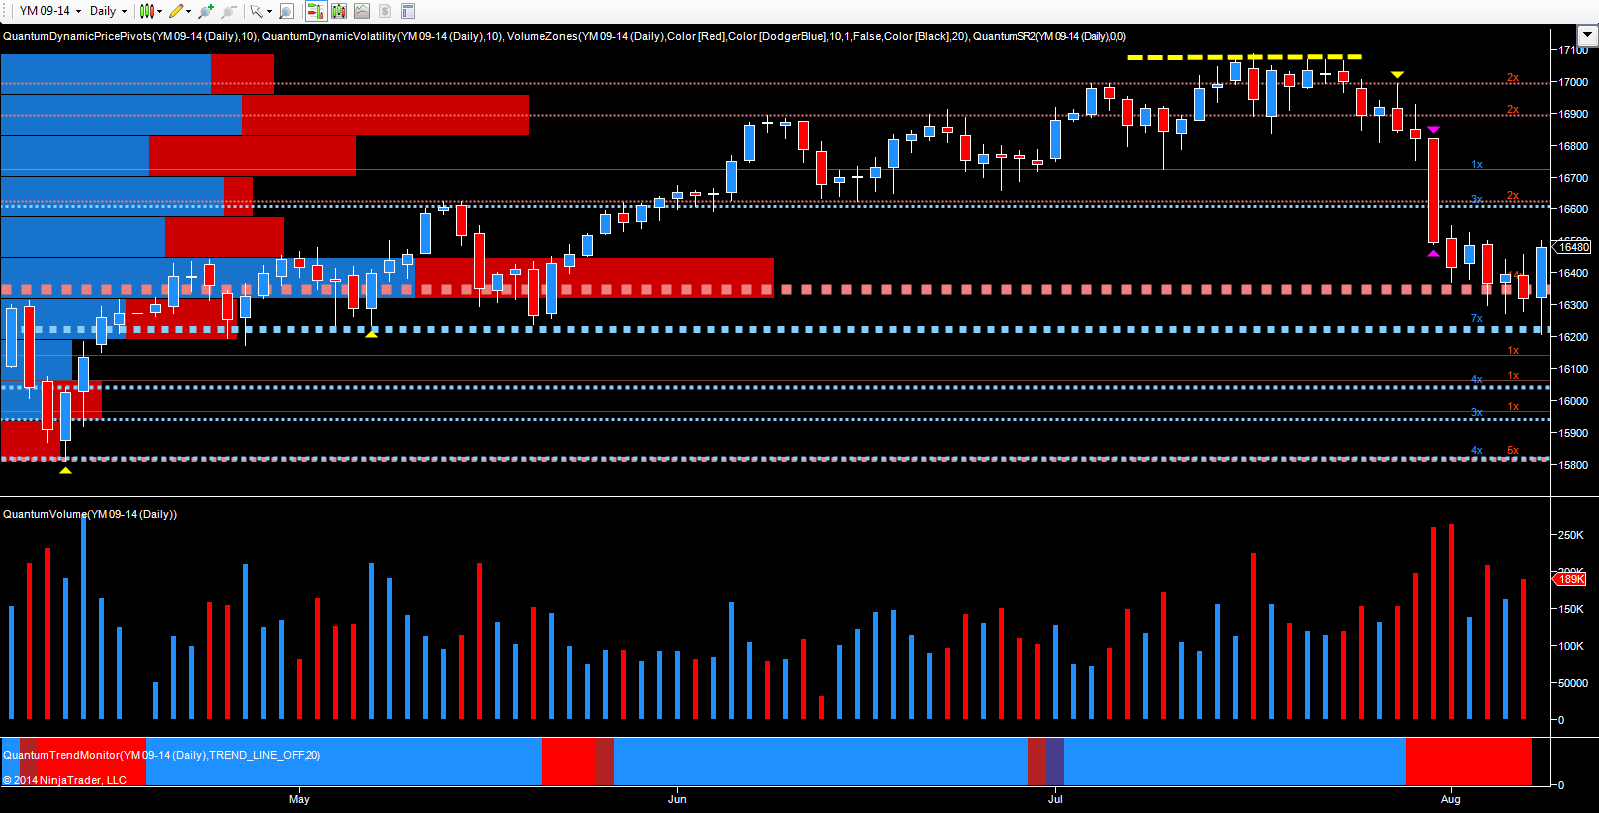 YM Emini daily chart - September futures